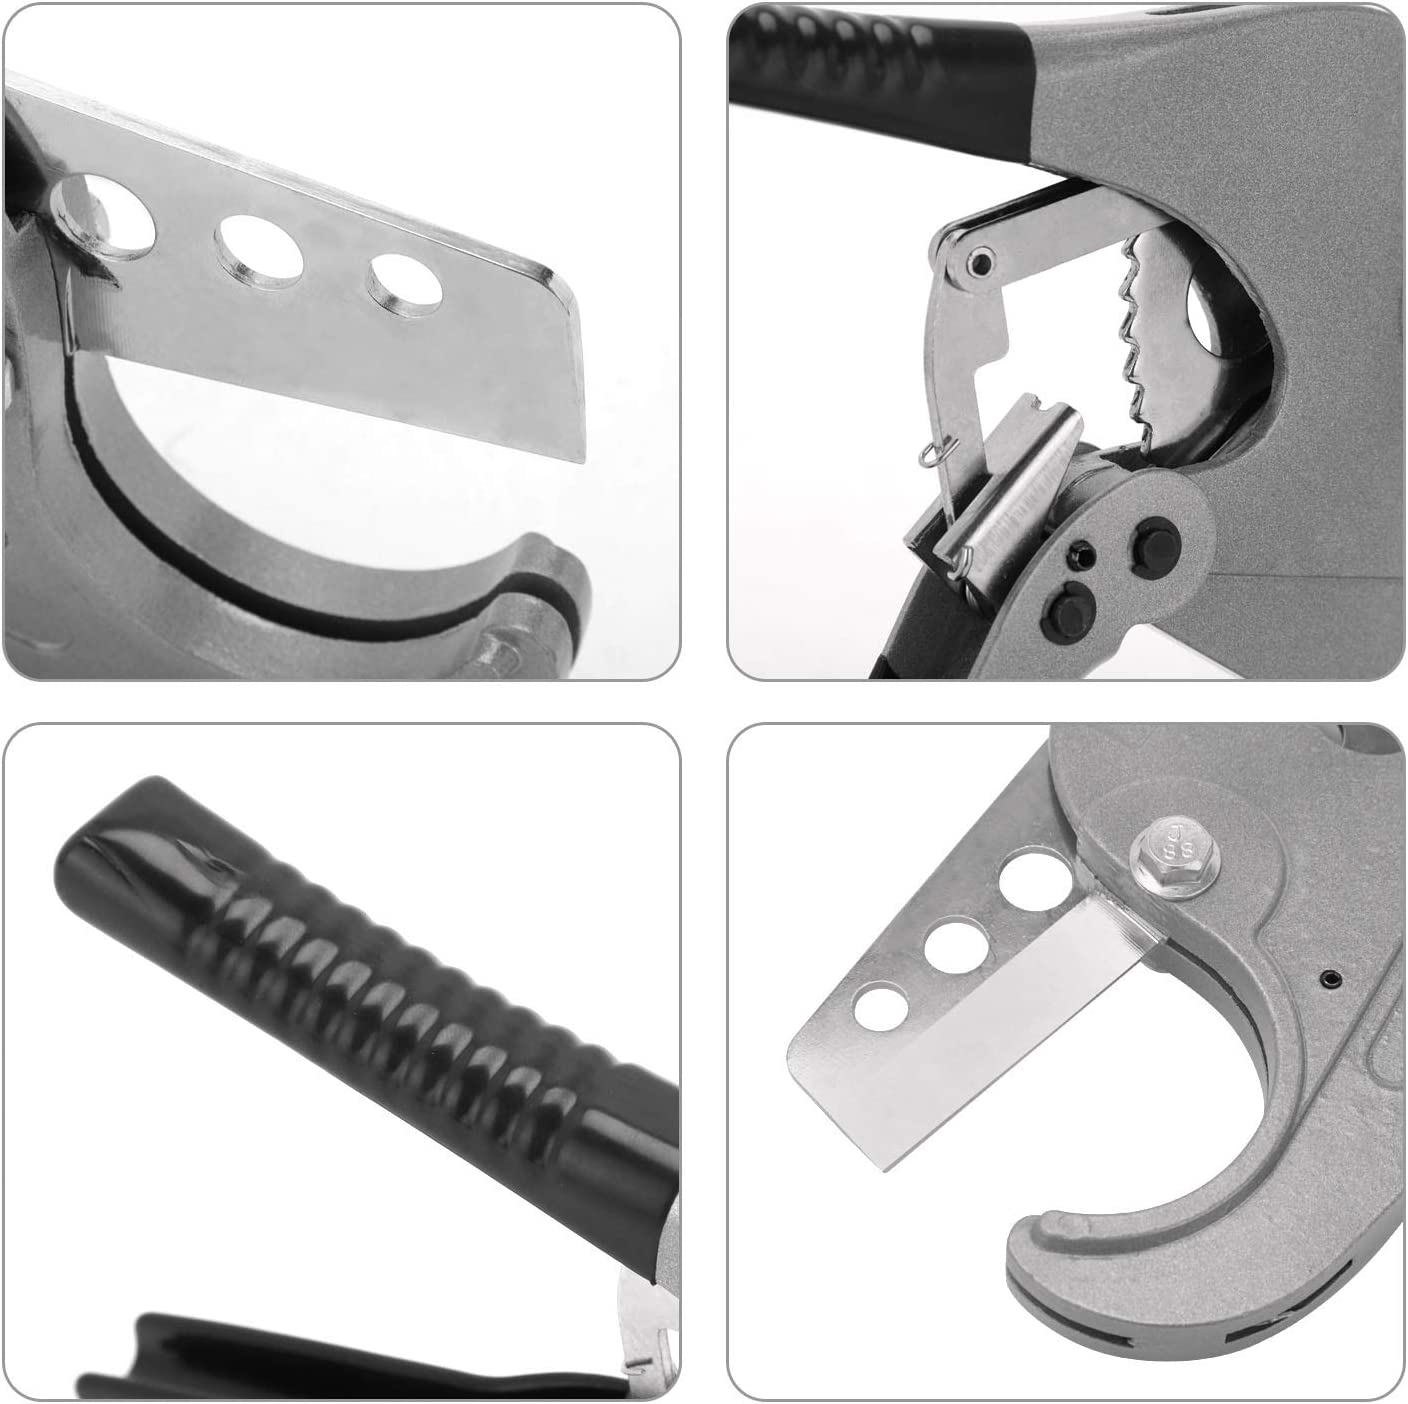 M MOKENEYE PVC Cutter Ratcheting Pipe Cutters Cuts up to 2-1//2 Pipe Capacity Cutting Tool One-hand Fast Pipe Cutting Tool for Home Working and Plumbers